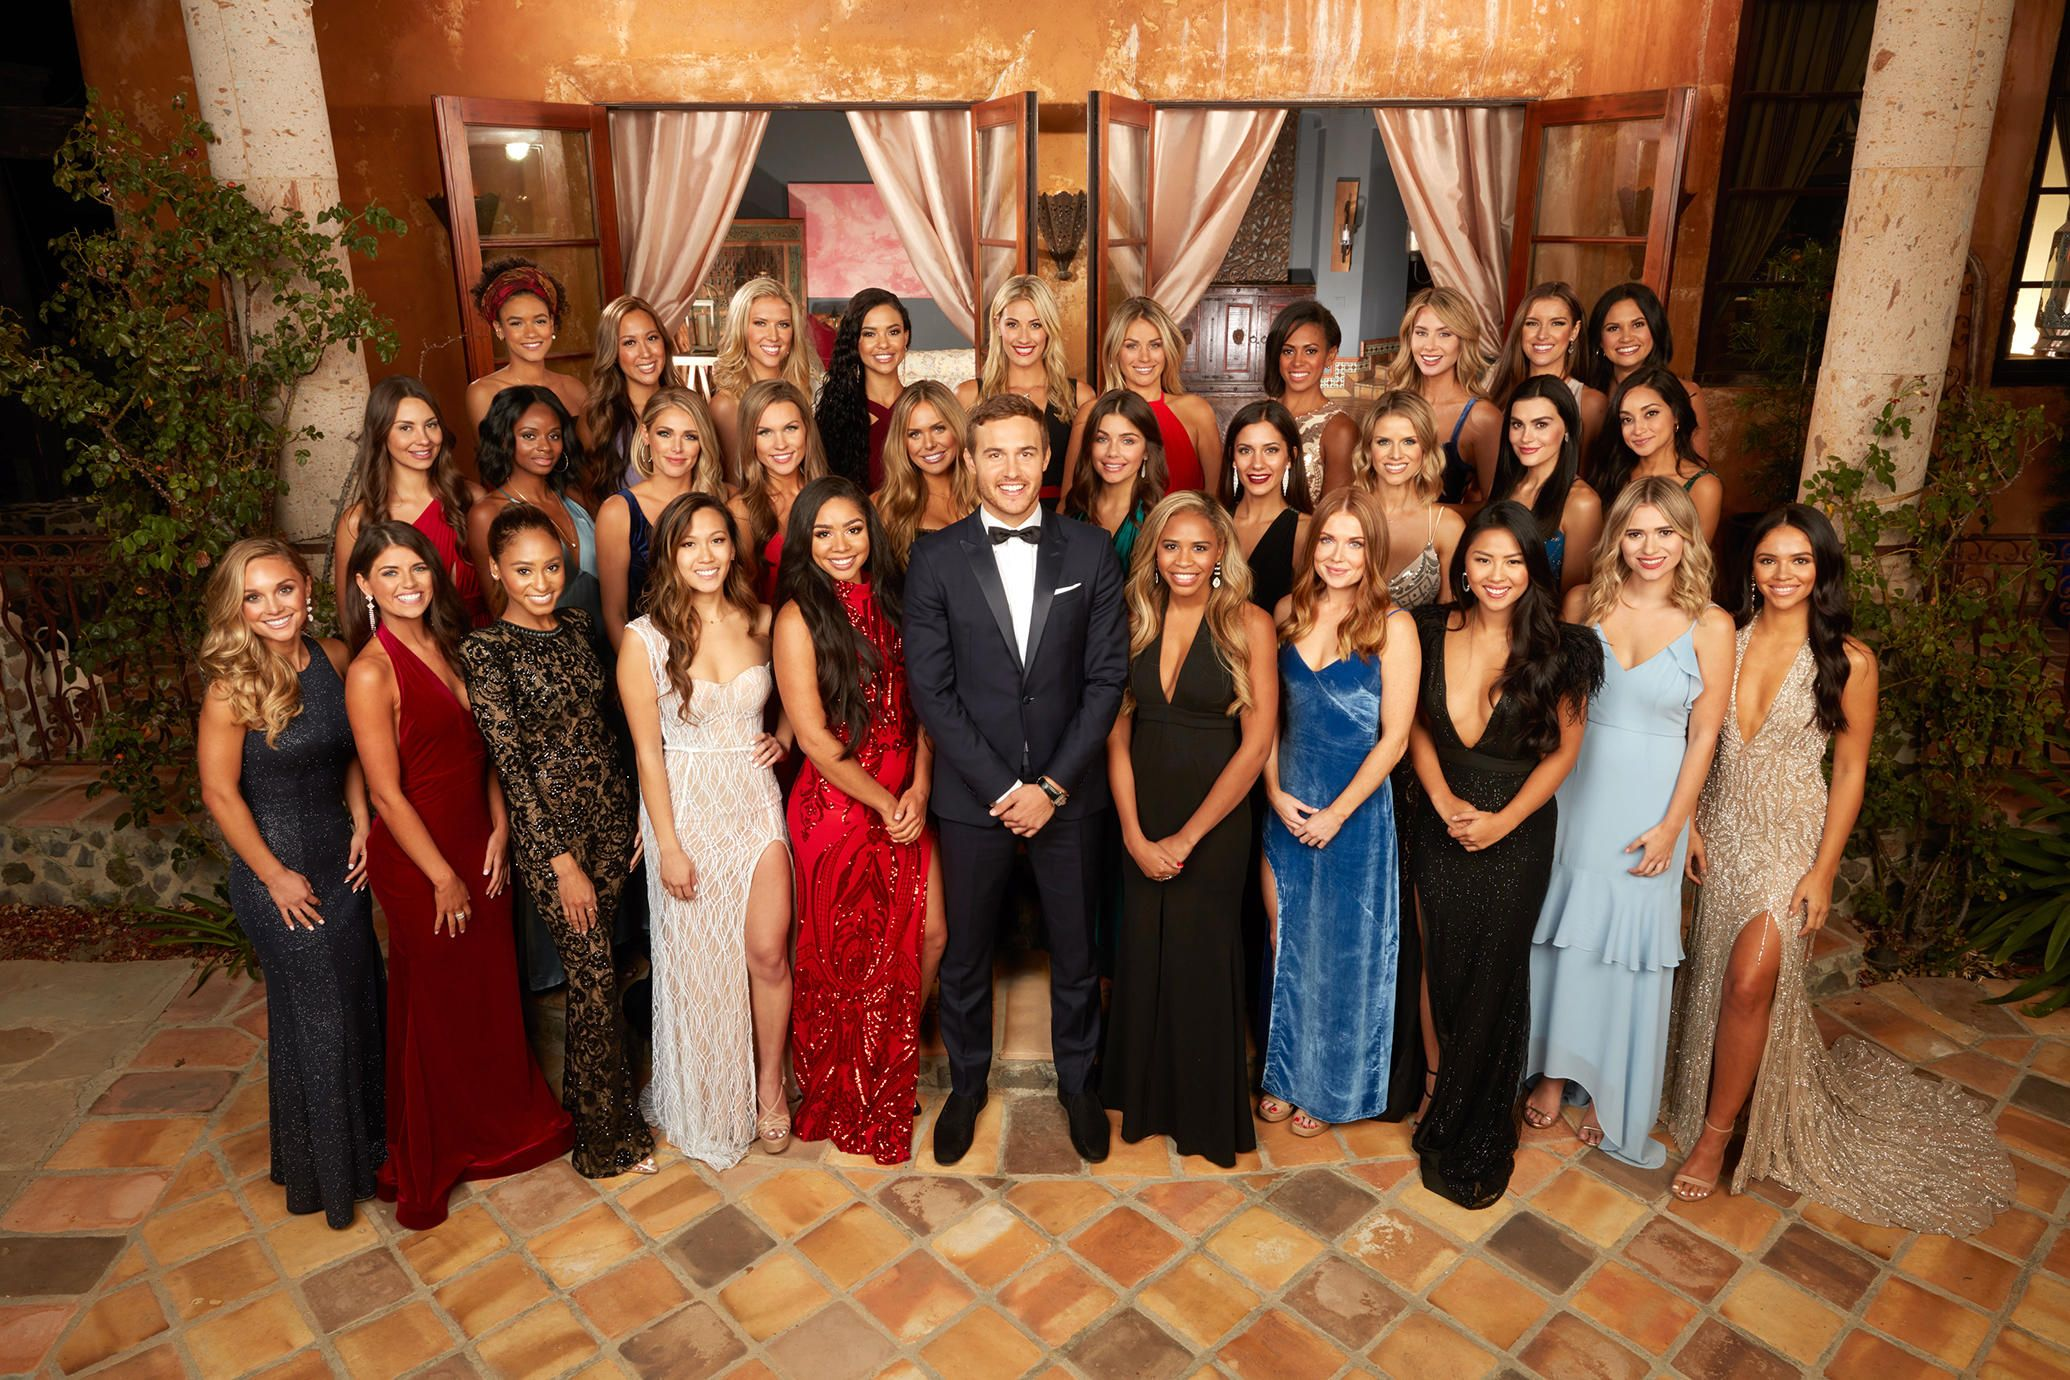 Can You Watch Tv On Peloton The Bachelor Cast Includes A Frog Hater A Reddit Lover And A Peloton Wife Lookalike Bachelor Premiere Bachelor Cast Bachelor Tonight